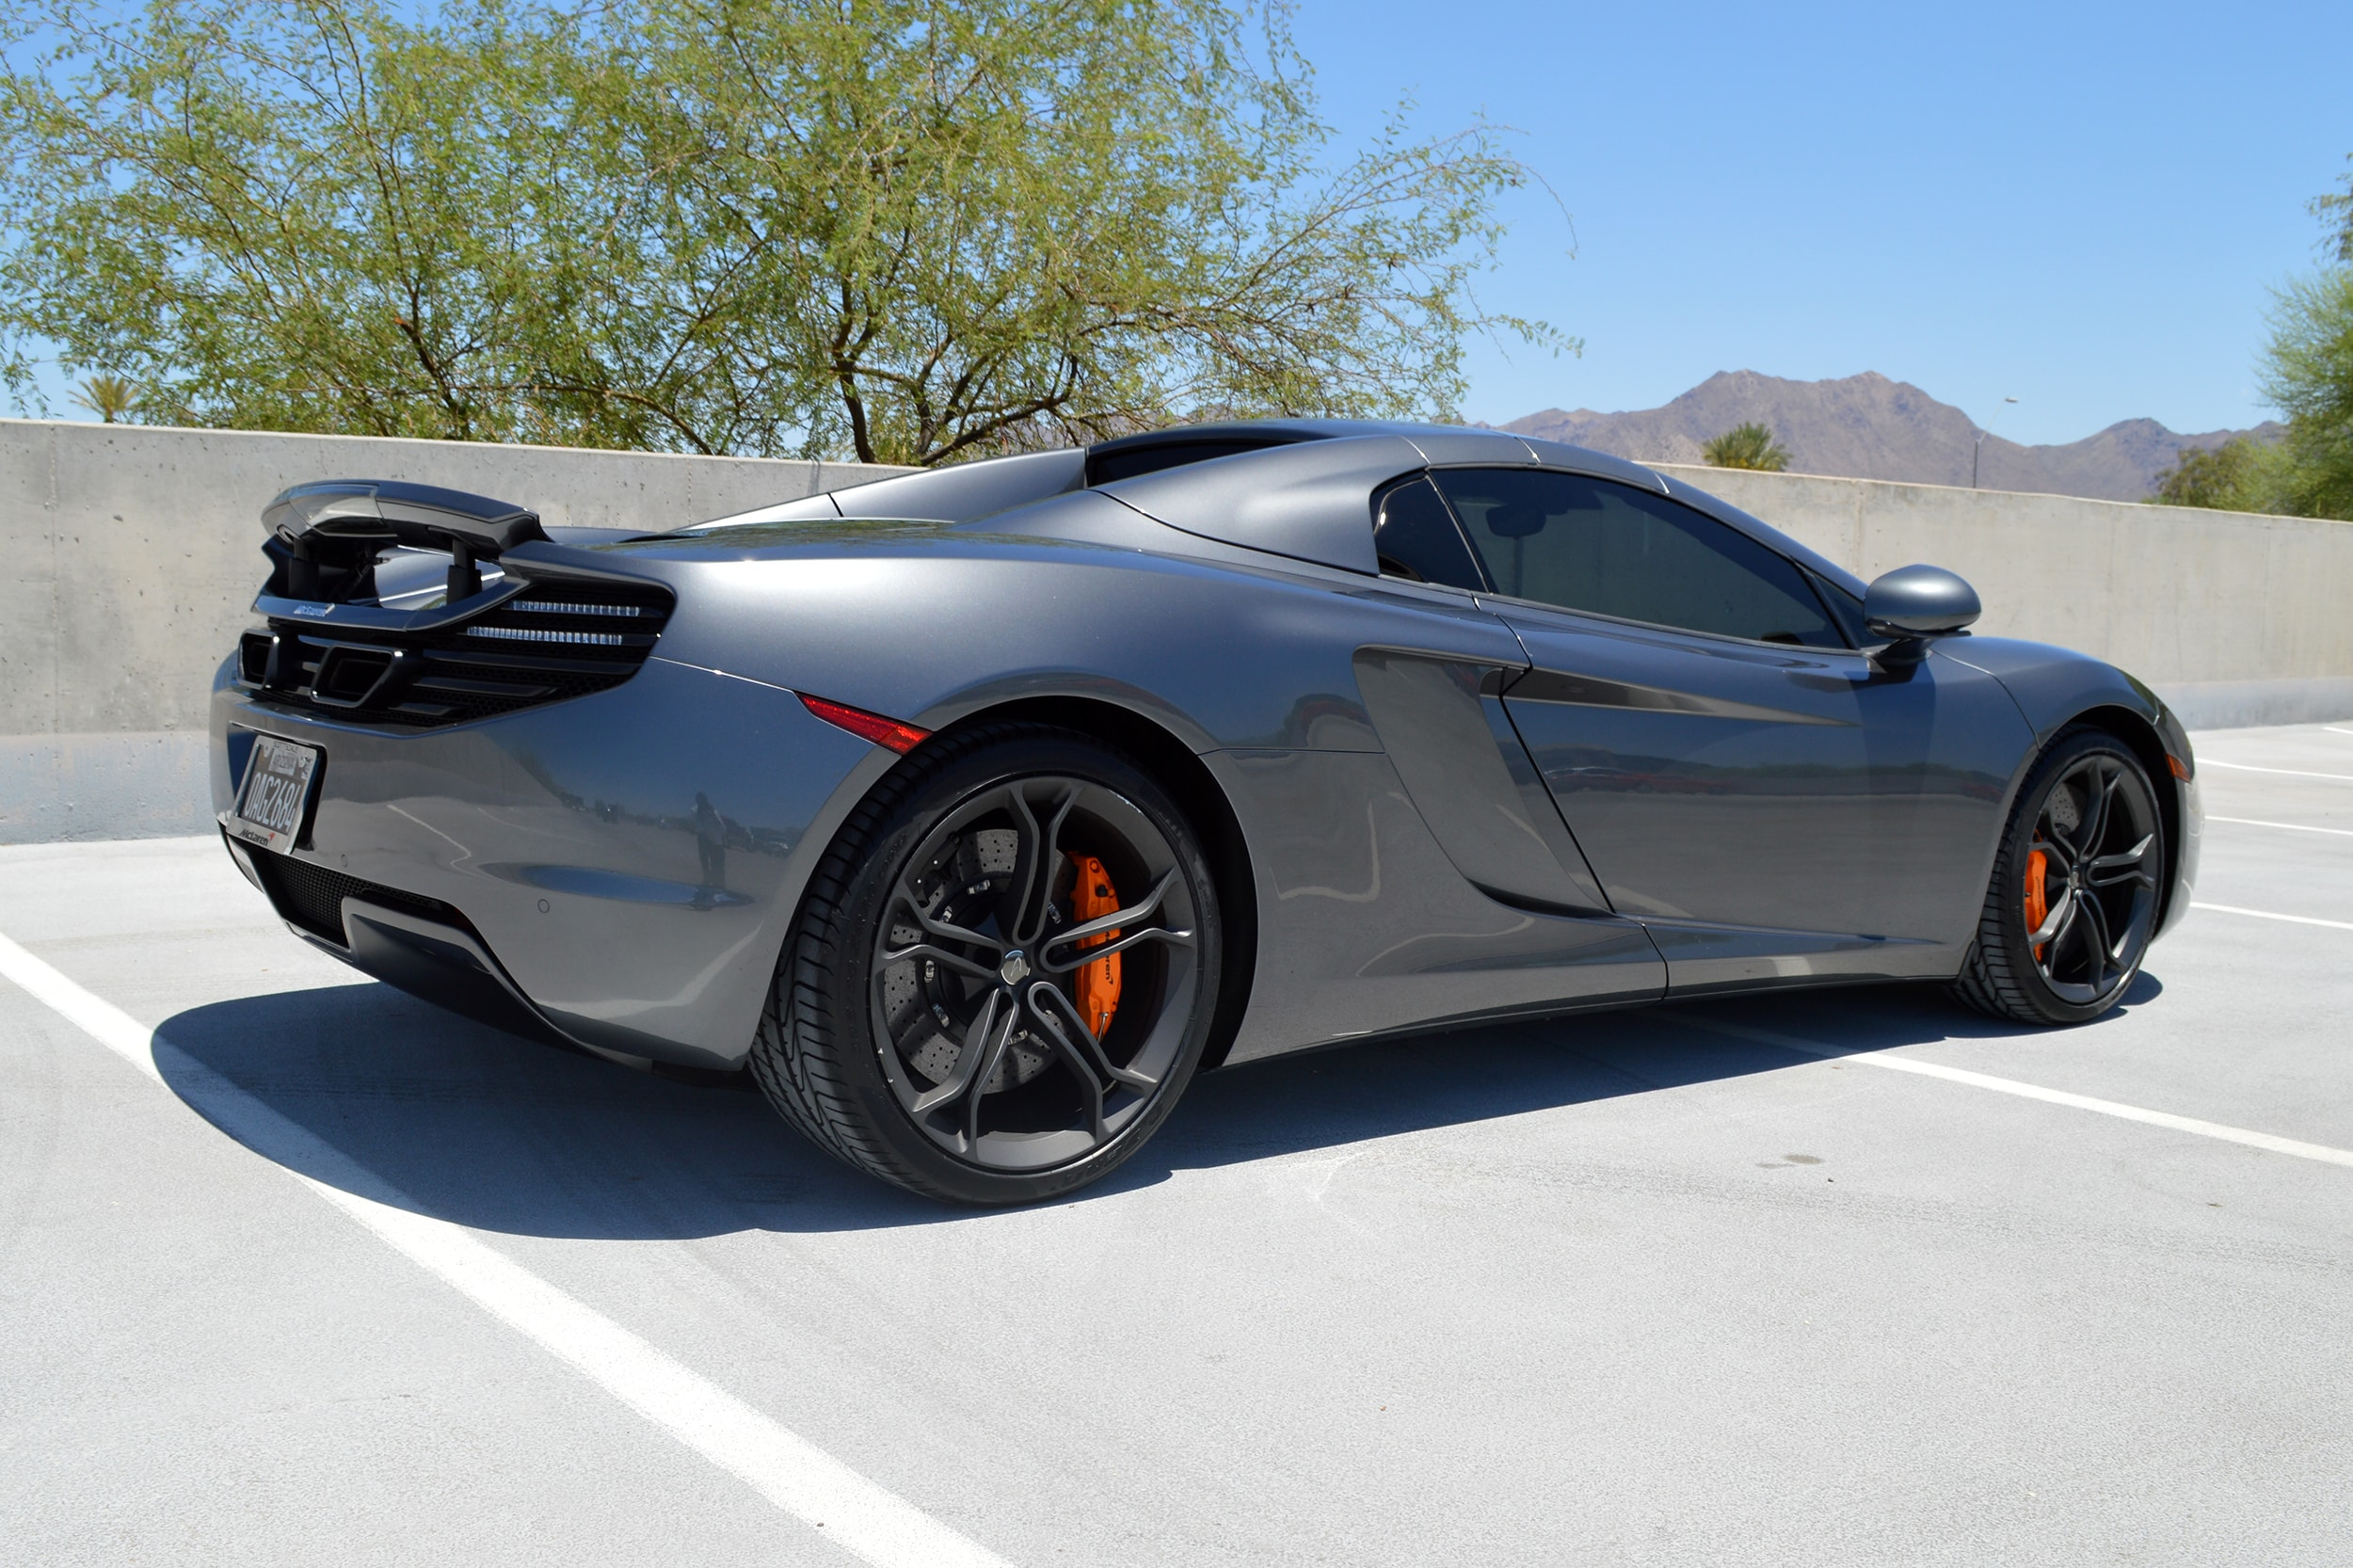 ... Certified Pre Owned 2014 McLaren MP4 12C Spider Convertible For Sale  Scottsdale, AZ ...